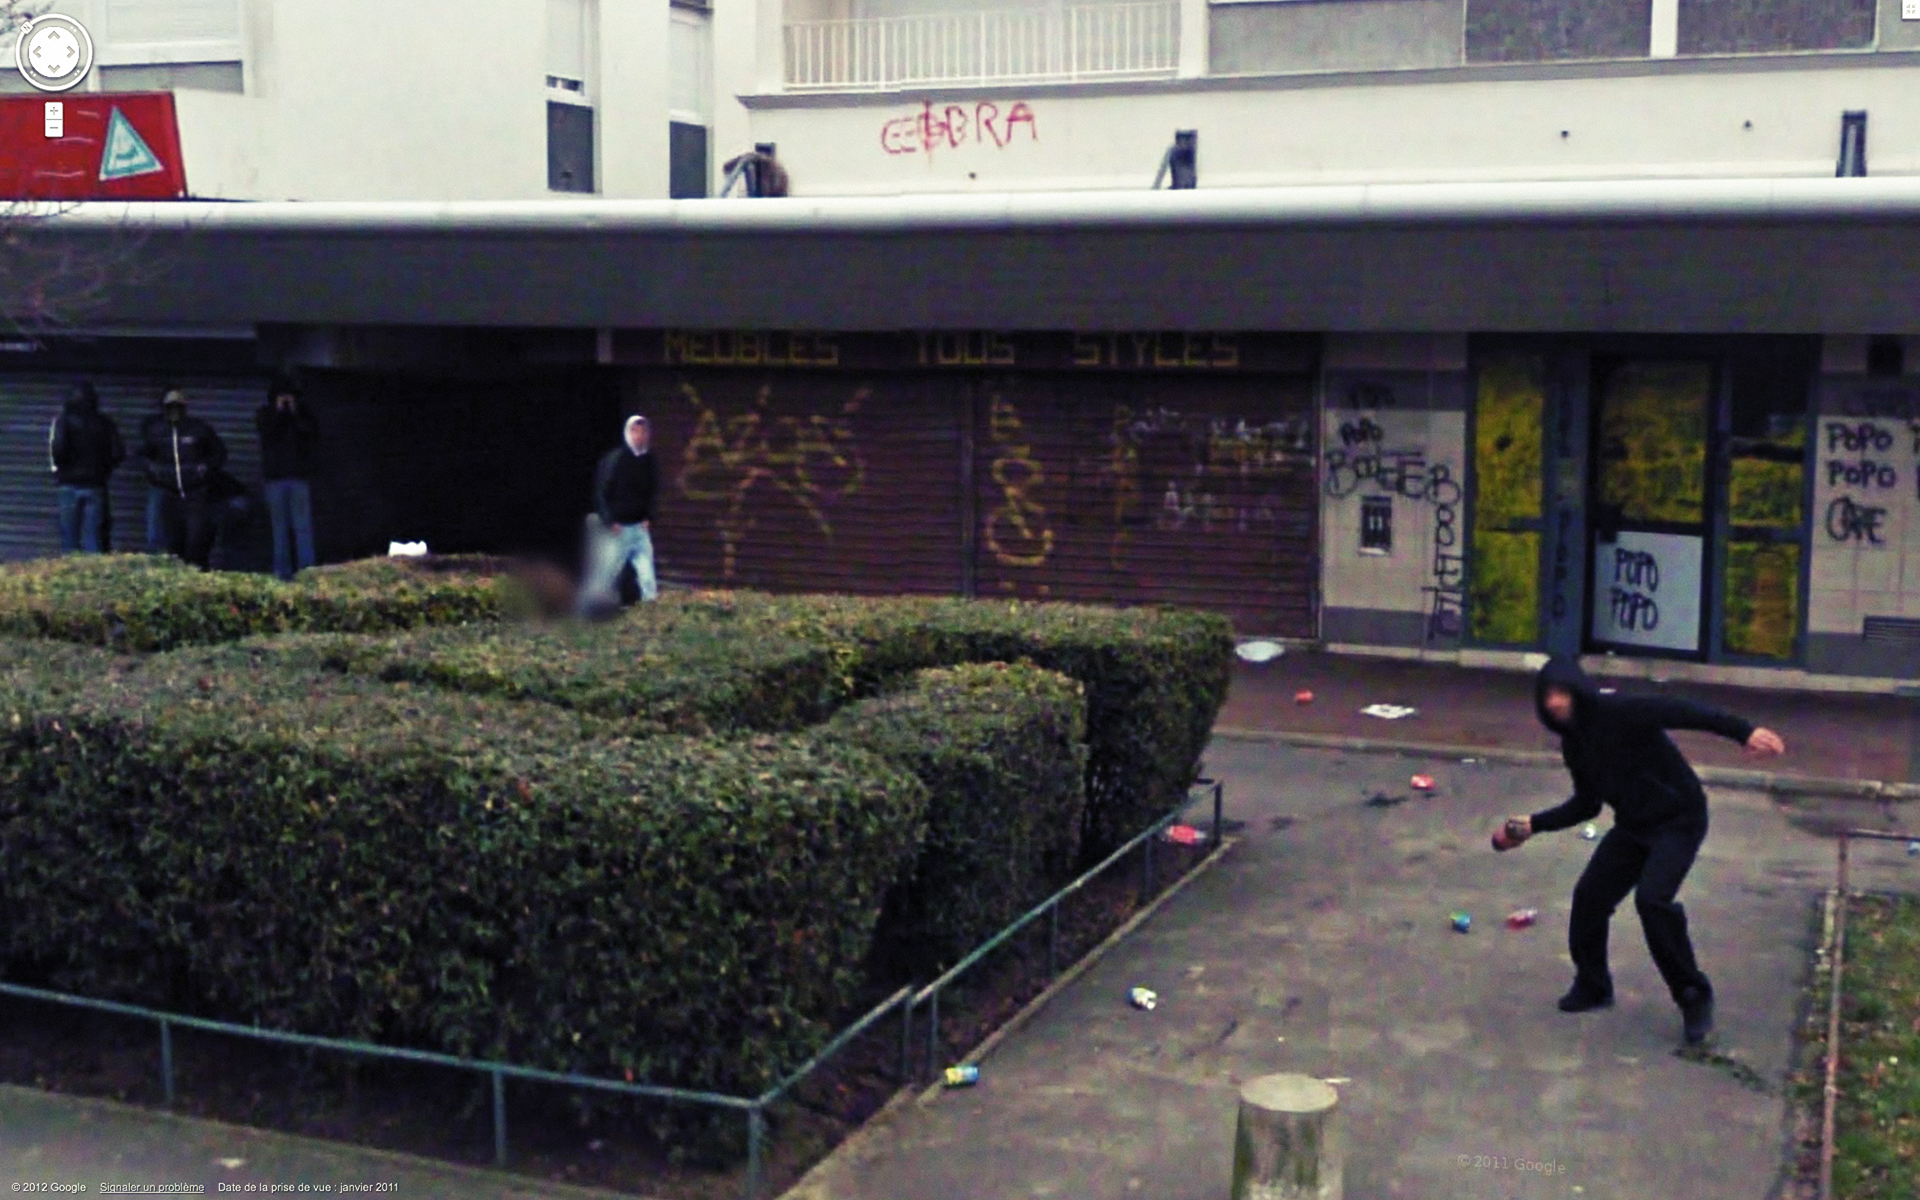 This colour photograph of an urban setting shows building façades covered in graffiti. A man dressed all in black, his face blurred, is preparing to throw something toward the camera.